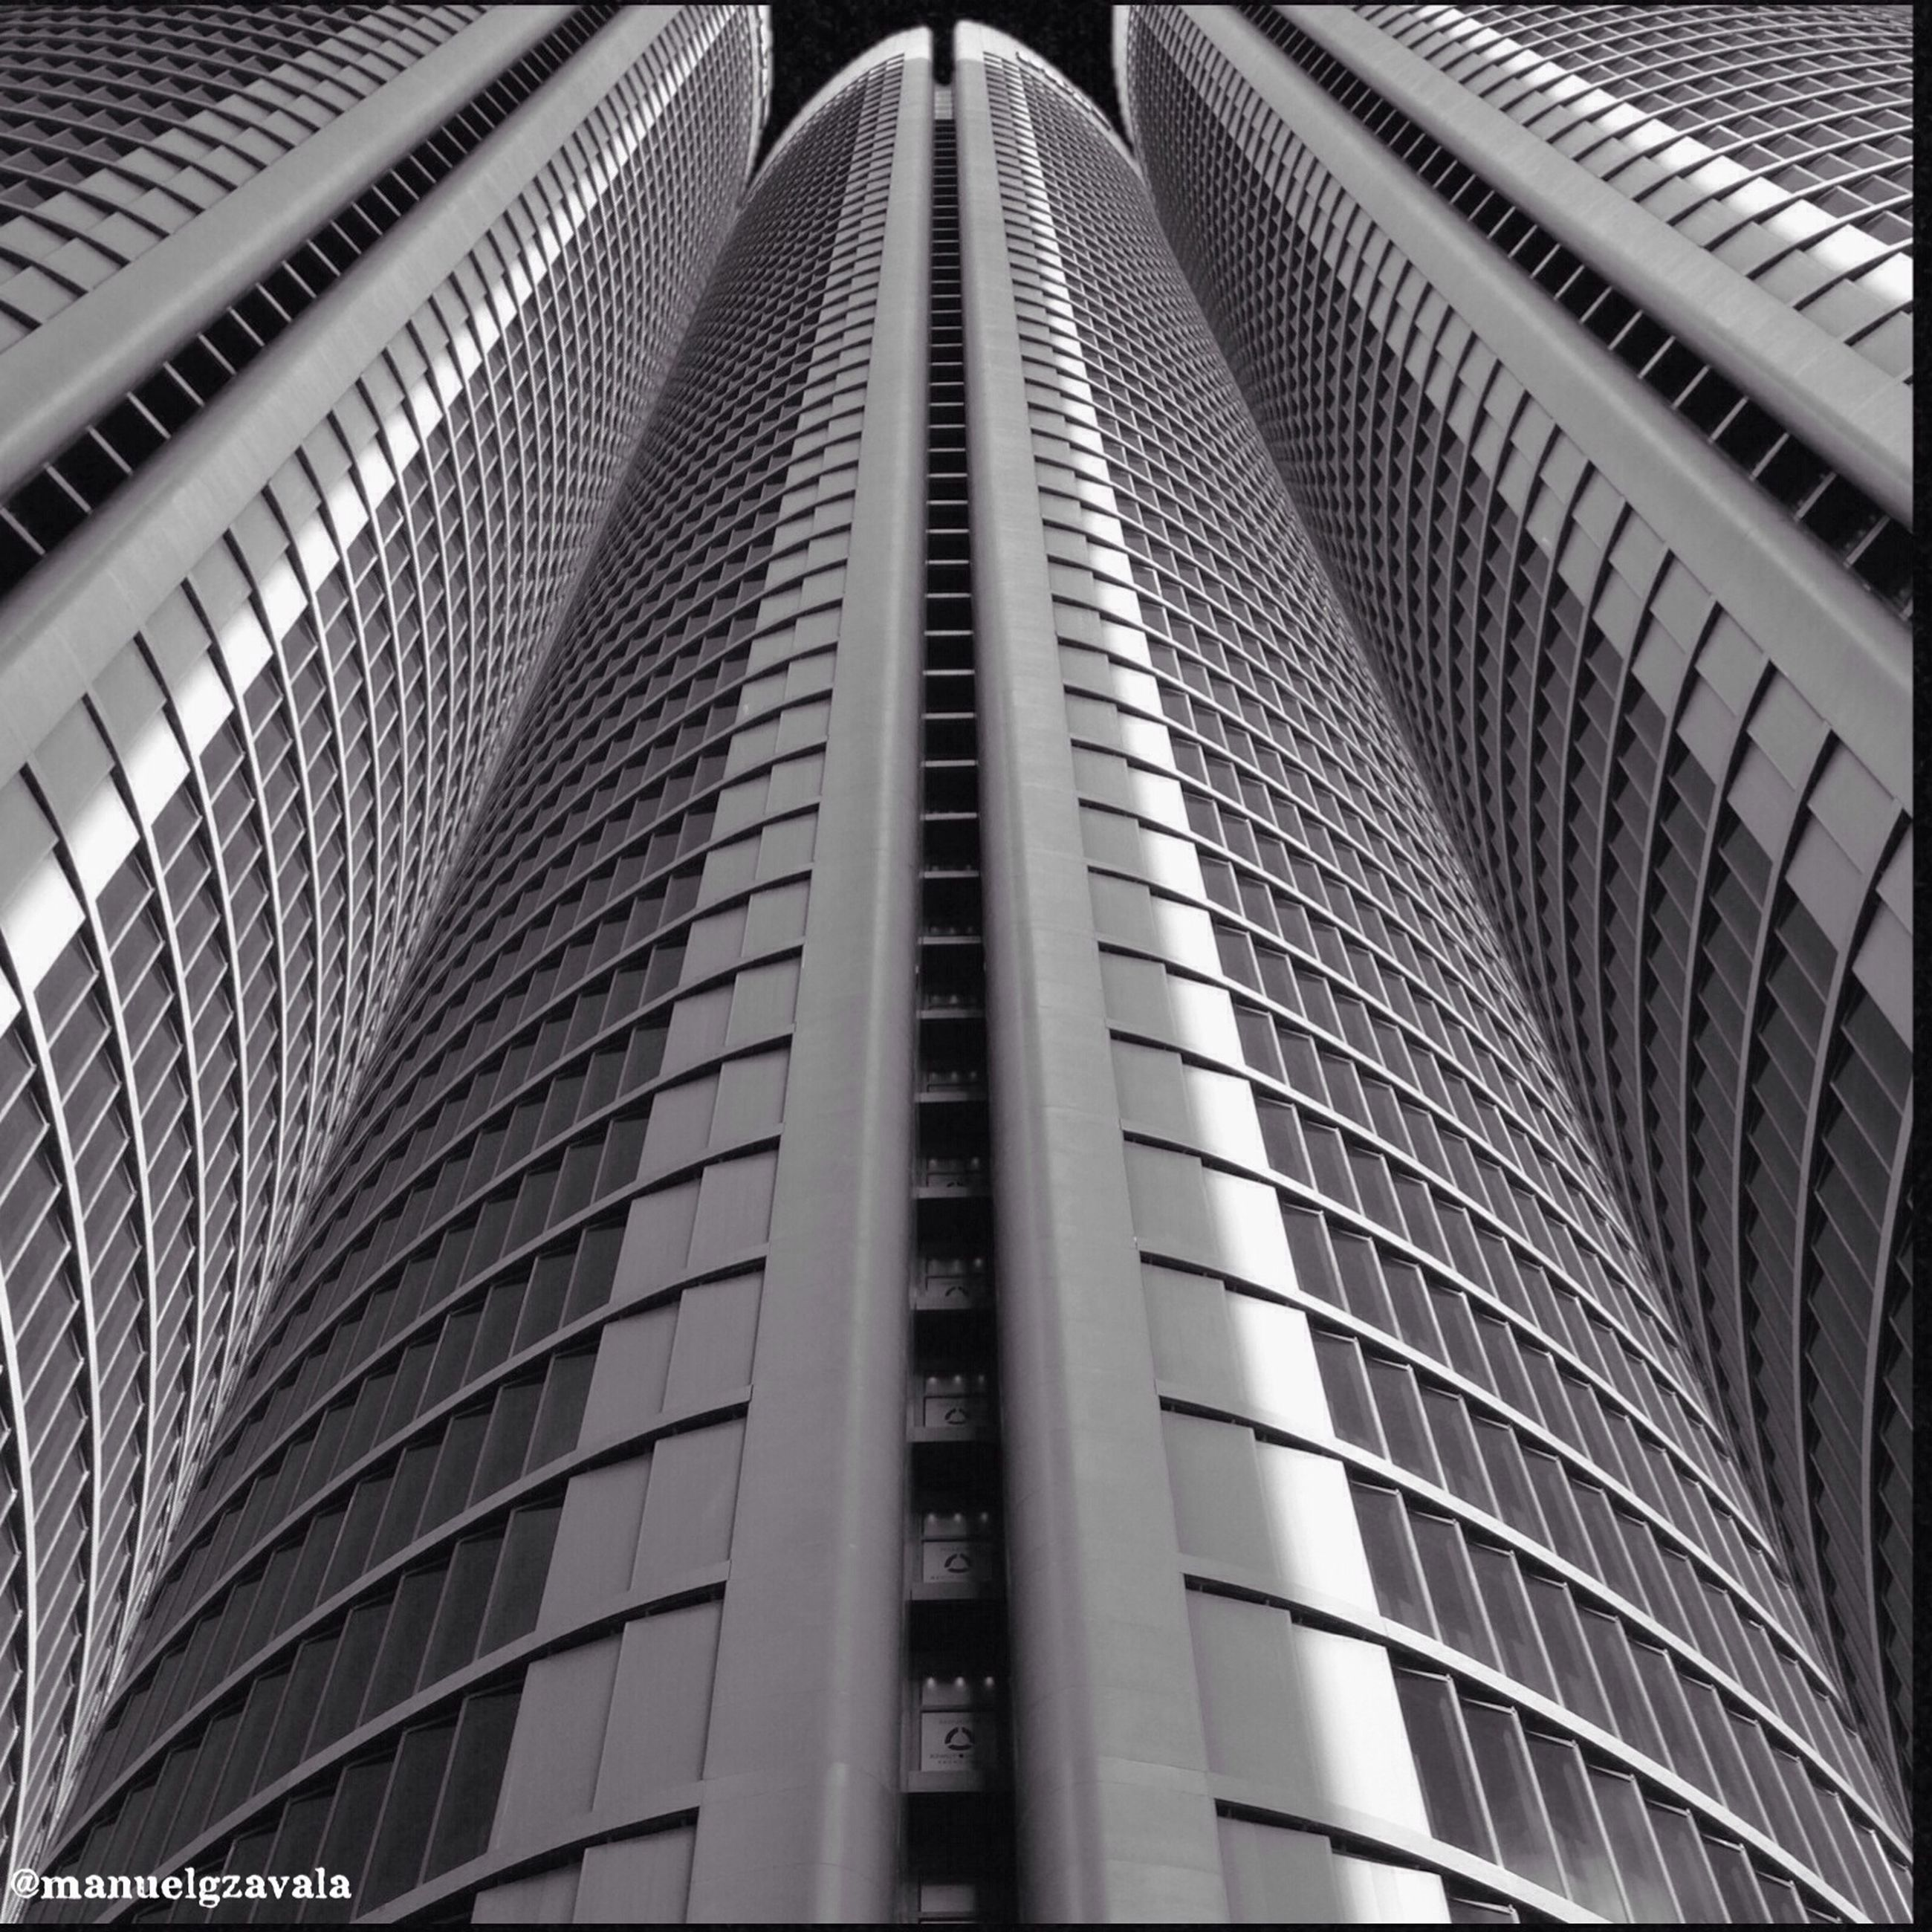 architecture, built structure, low angle view, building exterior, modern, repetition, pattern, office building, city, building, skyscraper, diminishing perspective, in a row, tall - high, no people, architectural feature, day, outdoors, design, tower